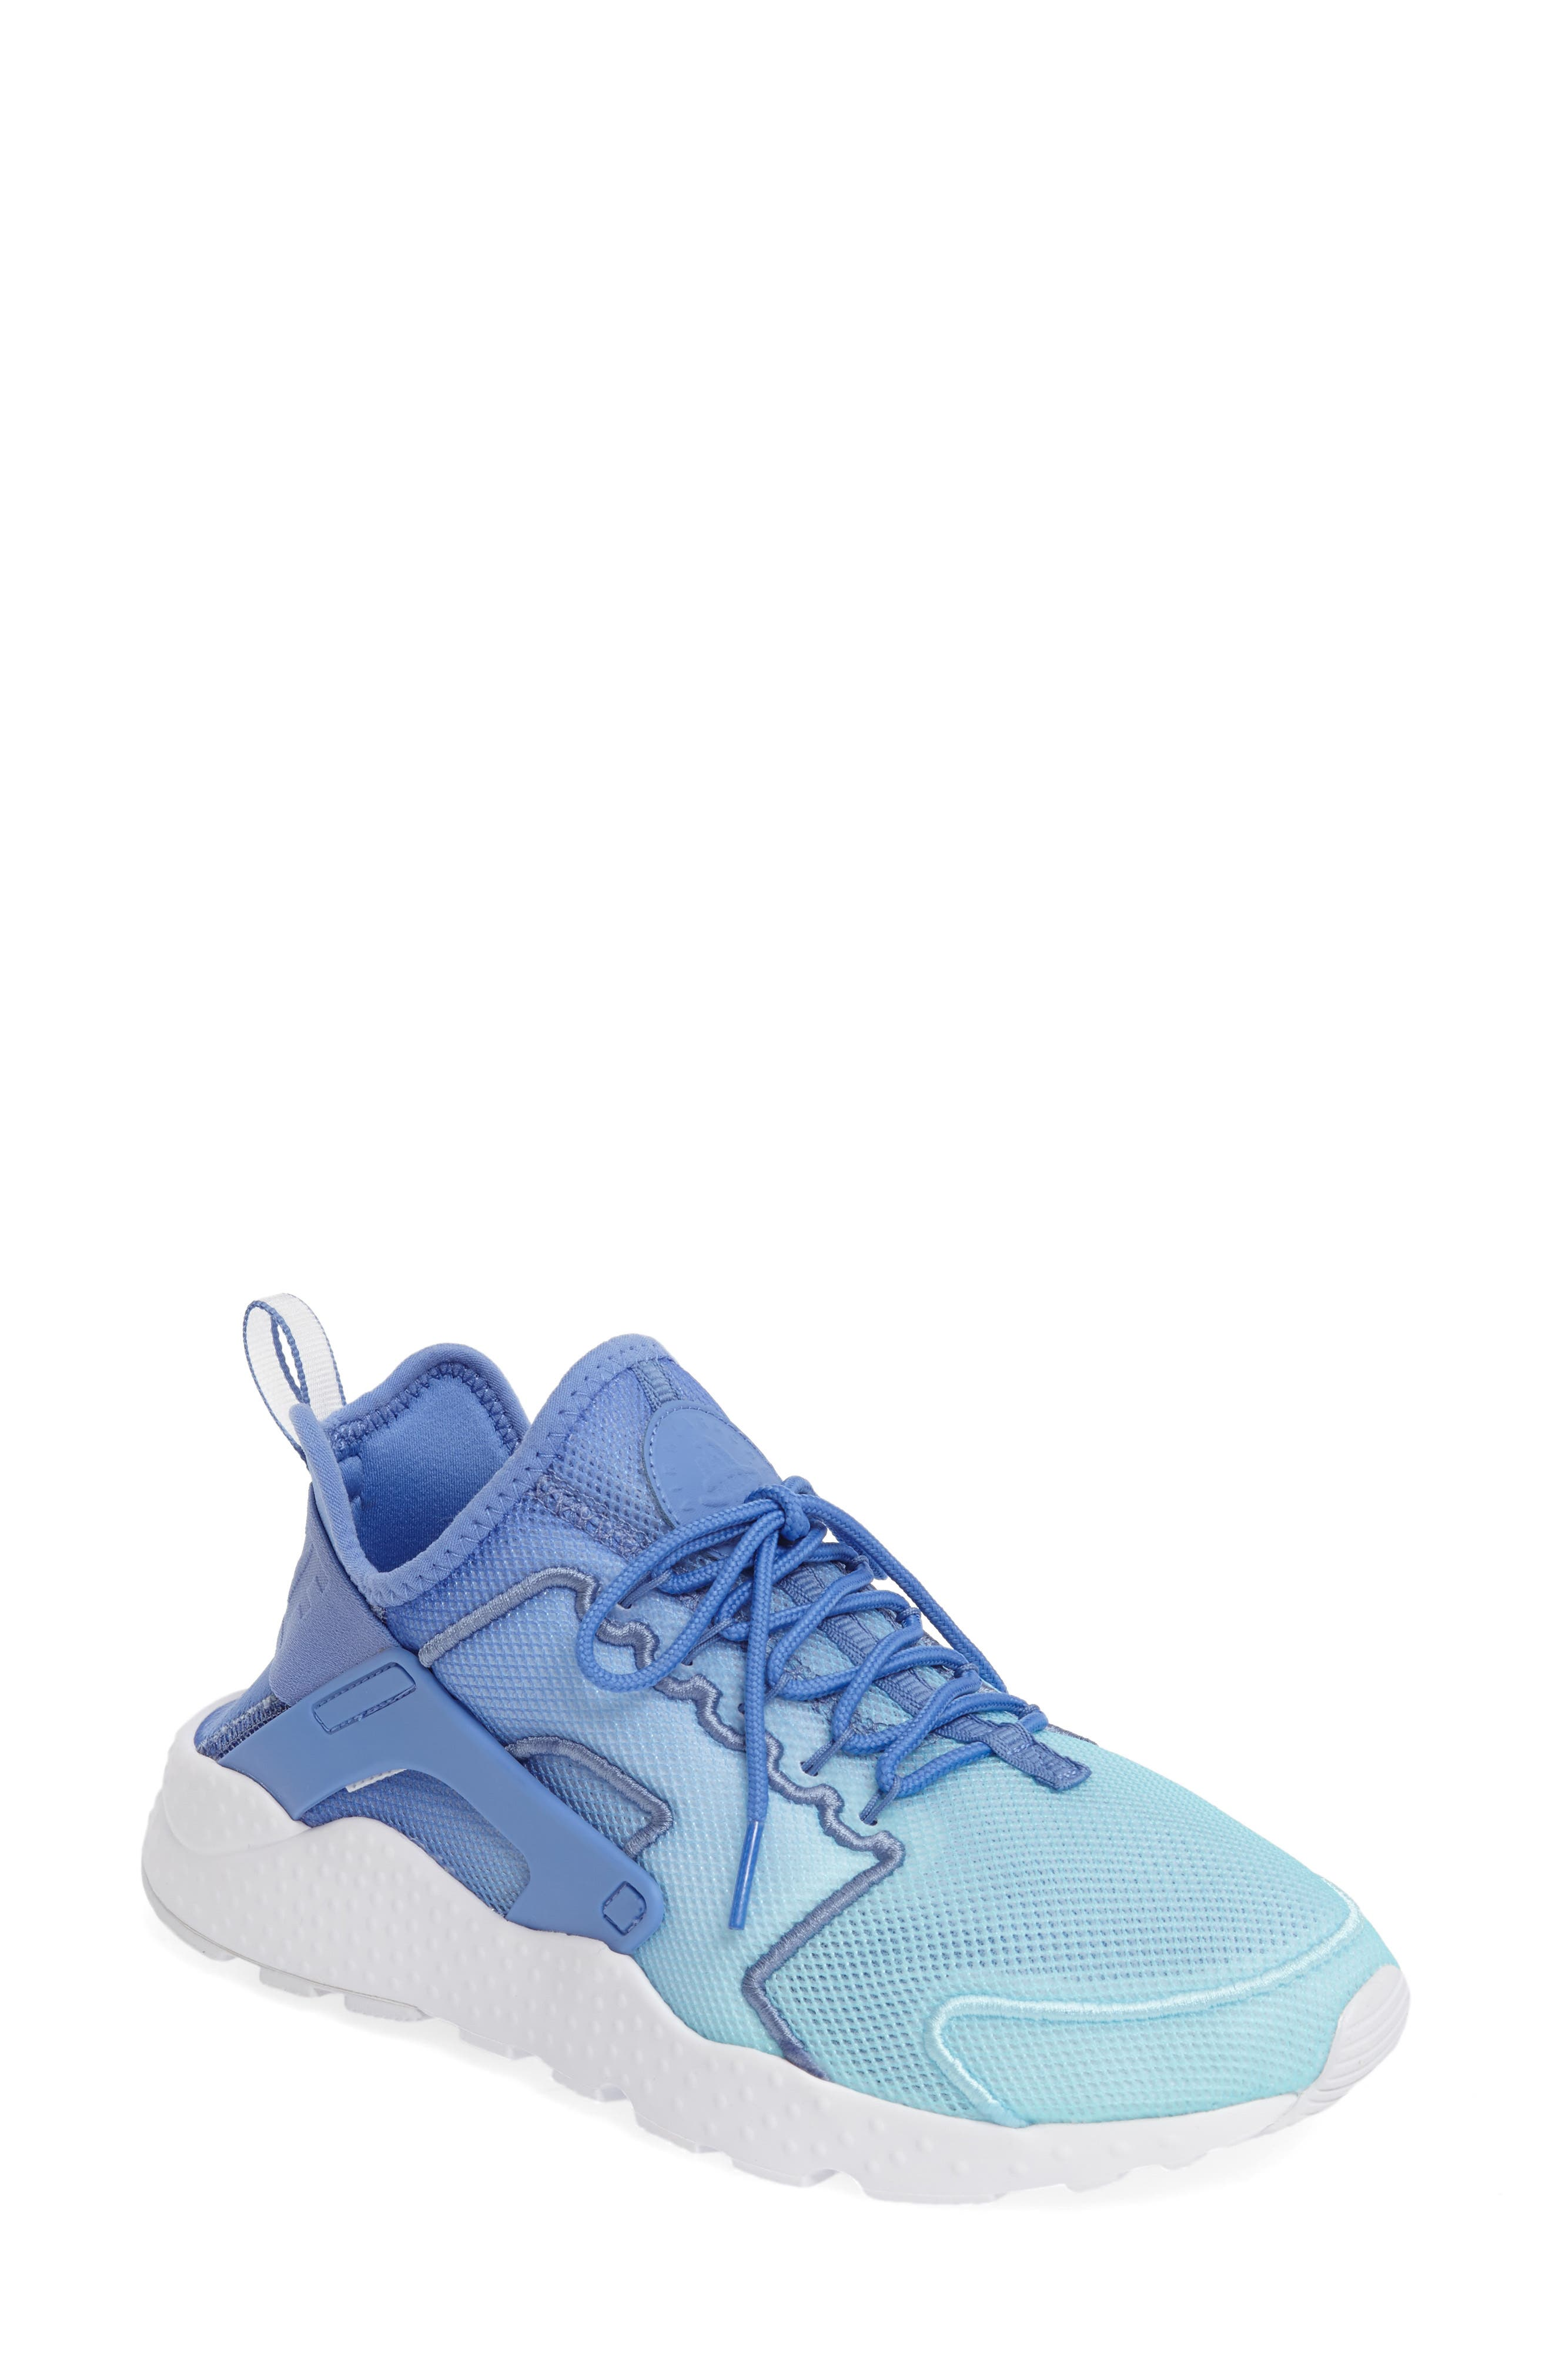 Alternate Image 1 Selected - Nike 'Air Huarache Run Ultra Mesh' Sneaker (Women)